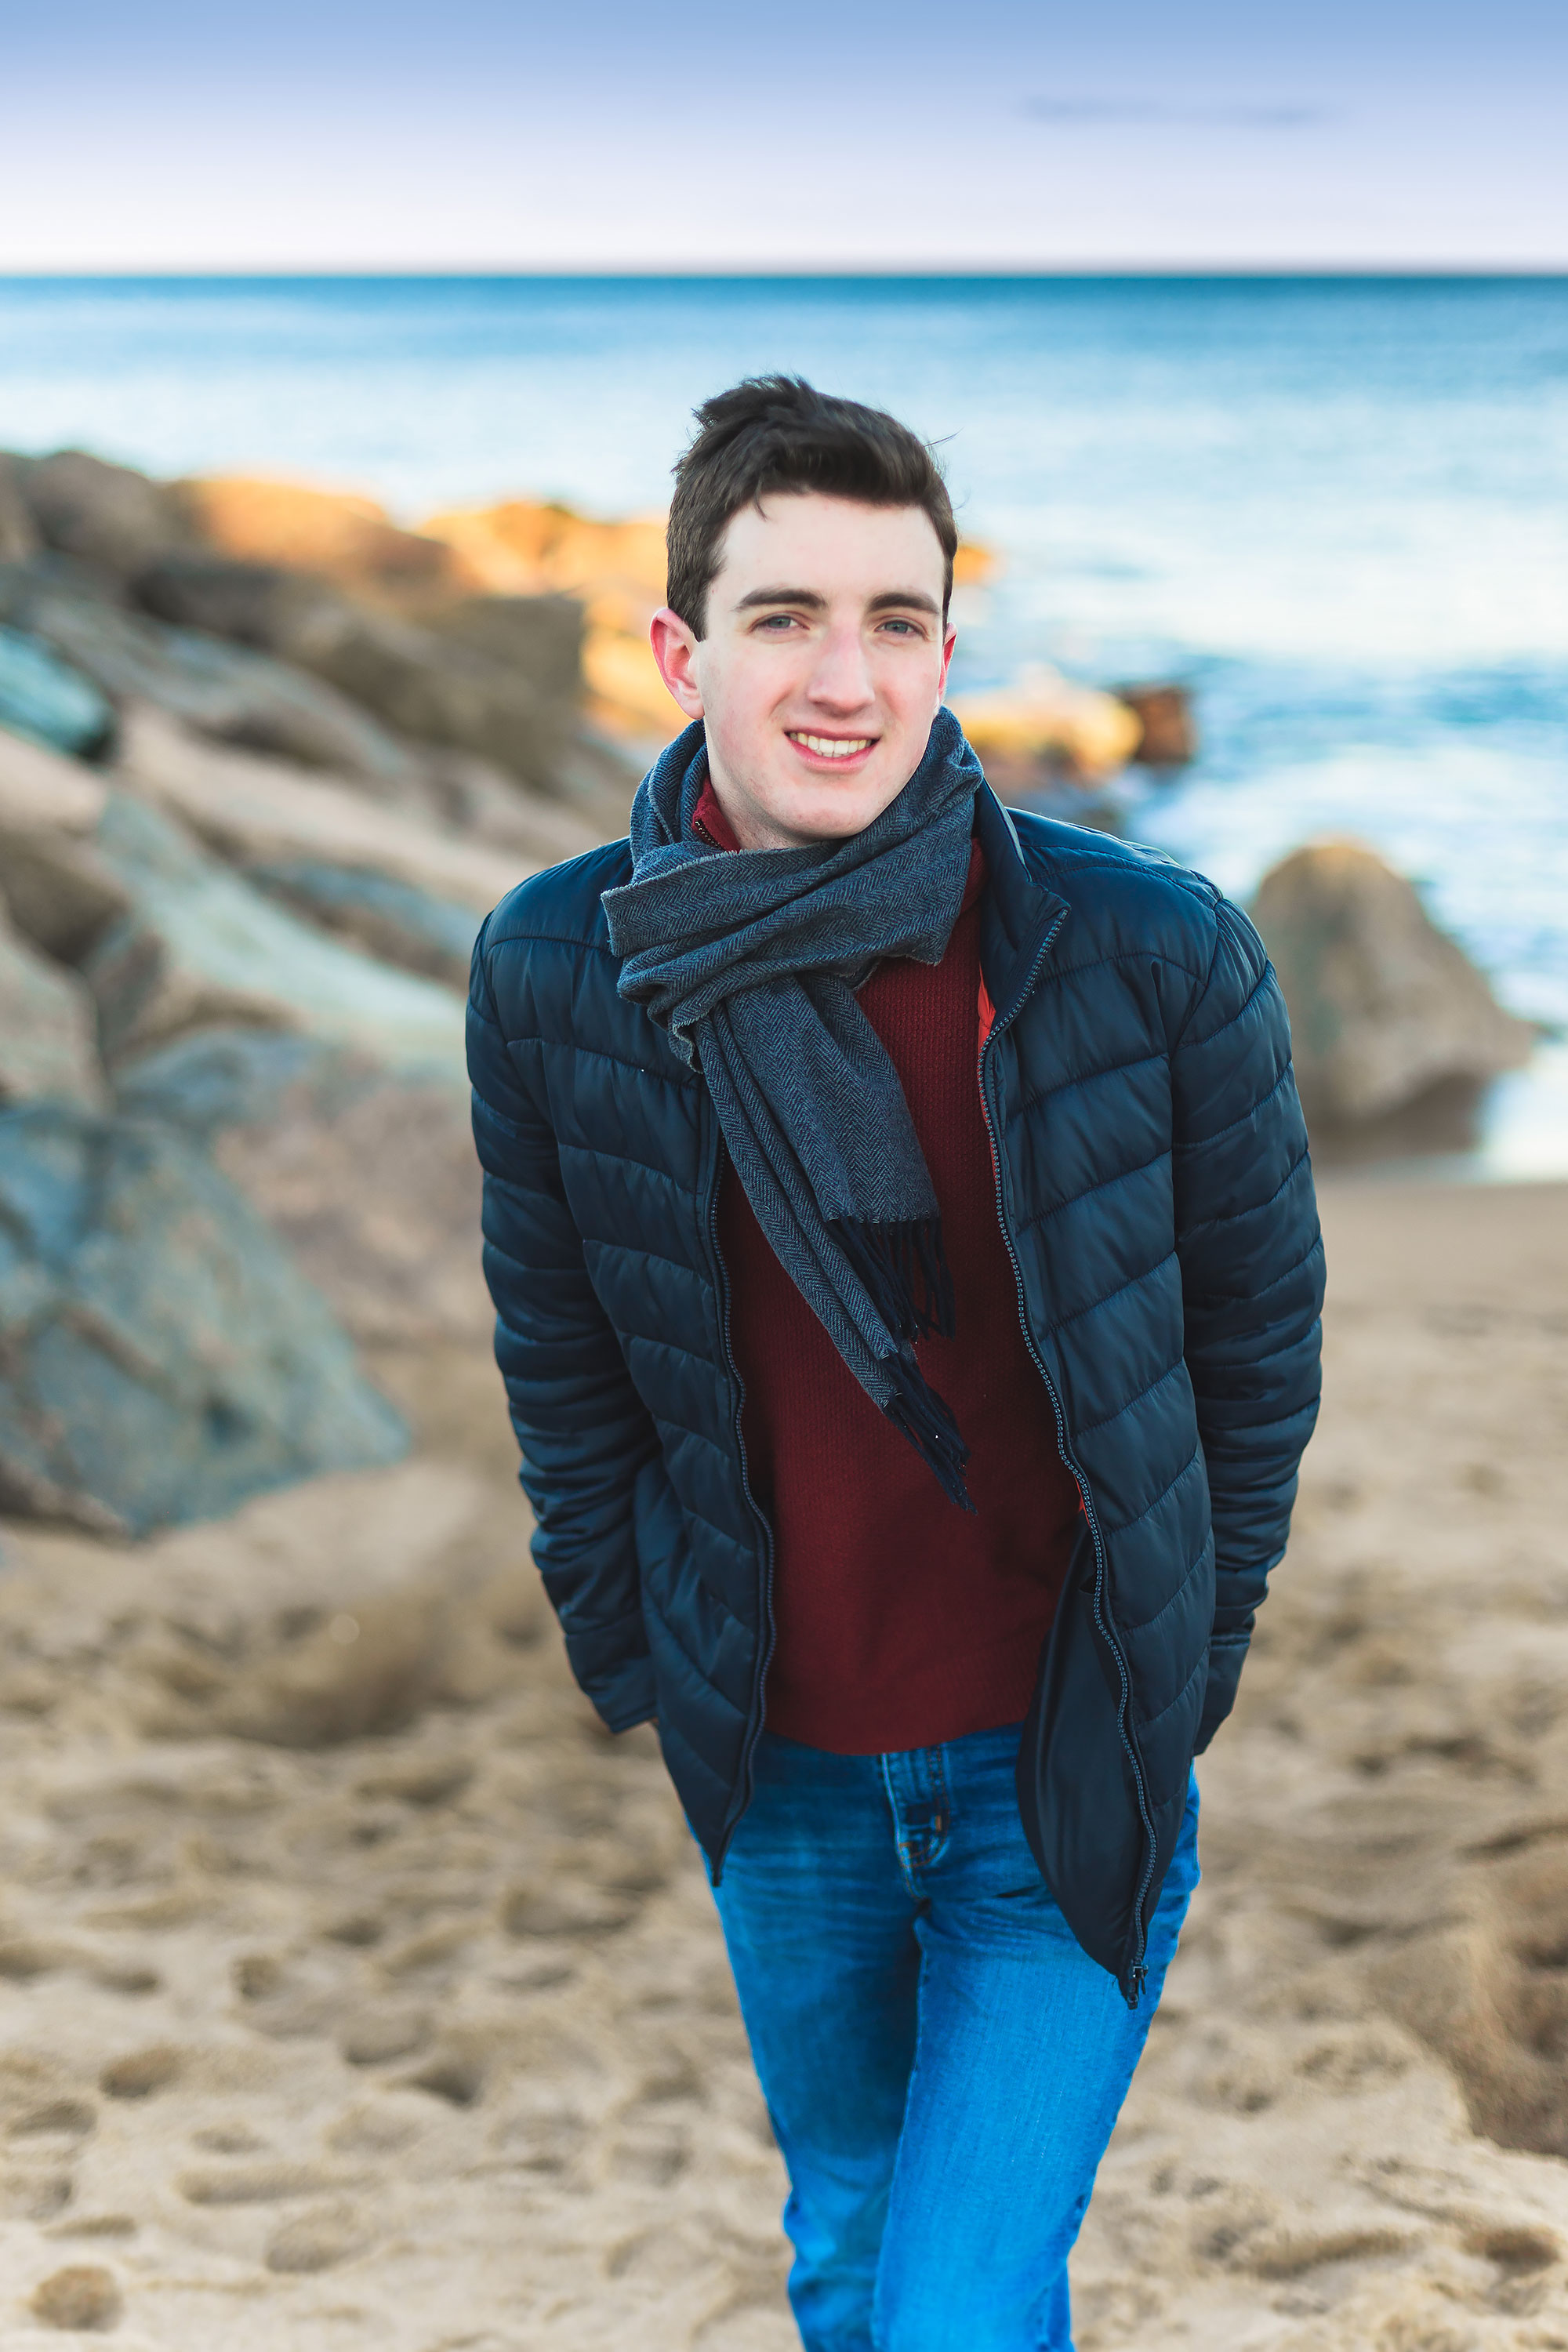 Plum Island Senior Portrait Photographer | Stephen Grant Photography